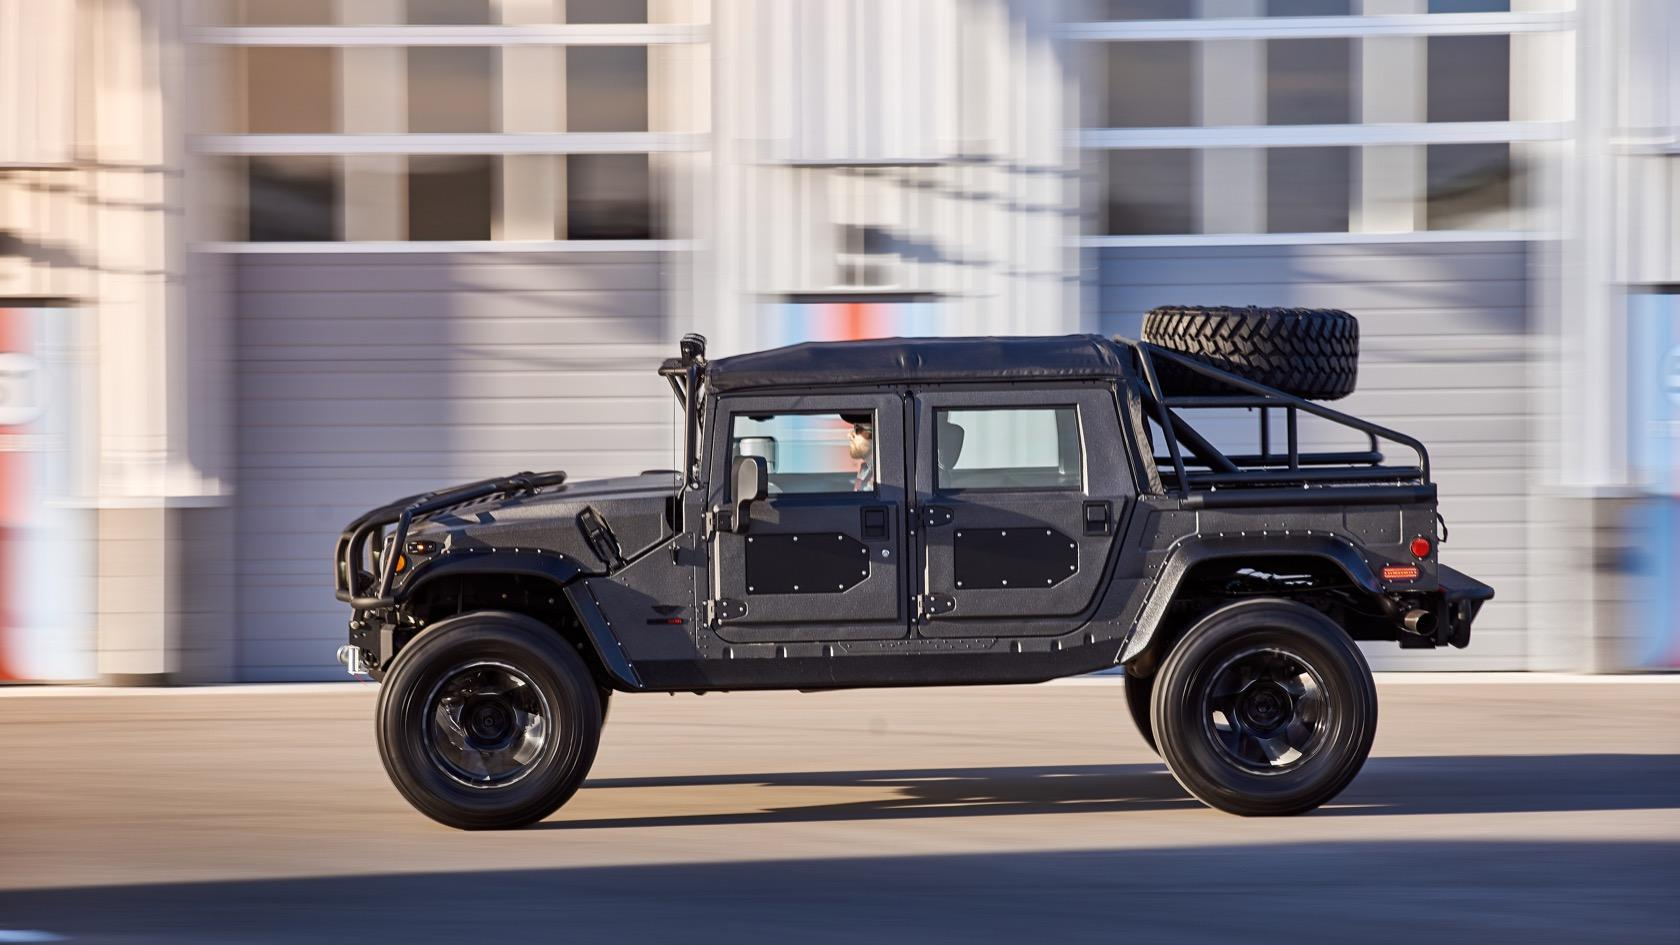 Hummer H13 reborn: MSA gives iconic SUV a luxury upgrade ... | hummer upgrades